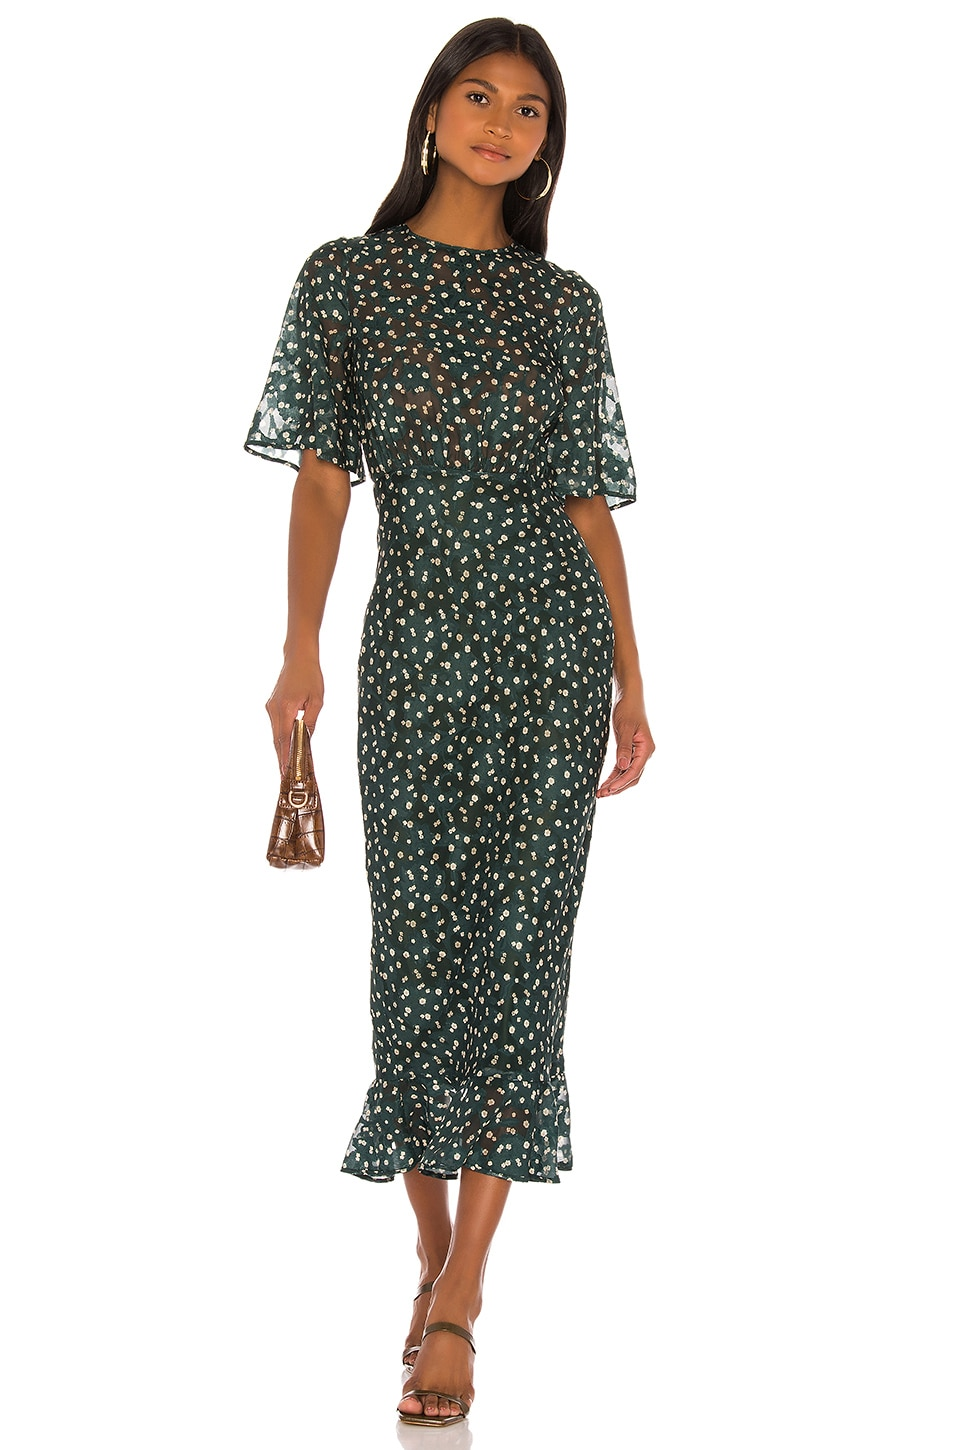 Tularosa Ziggy Dress in Hunter Green Floral